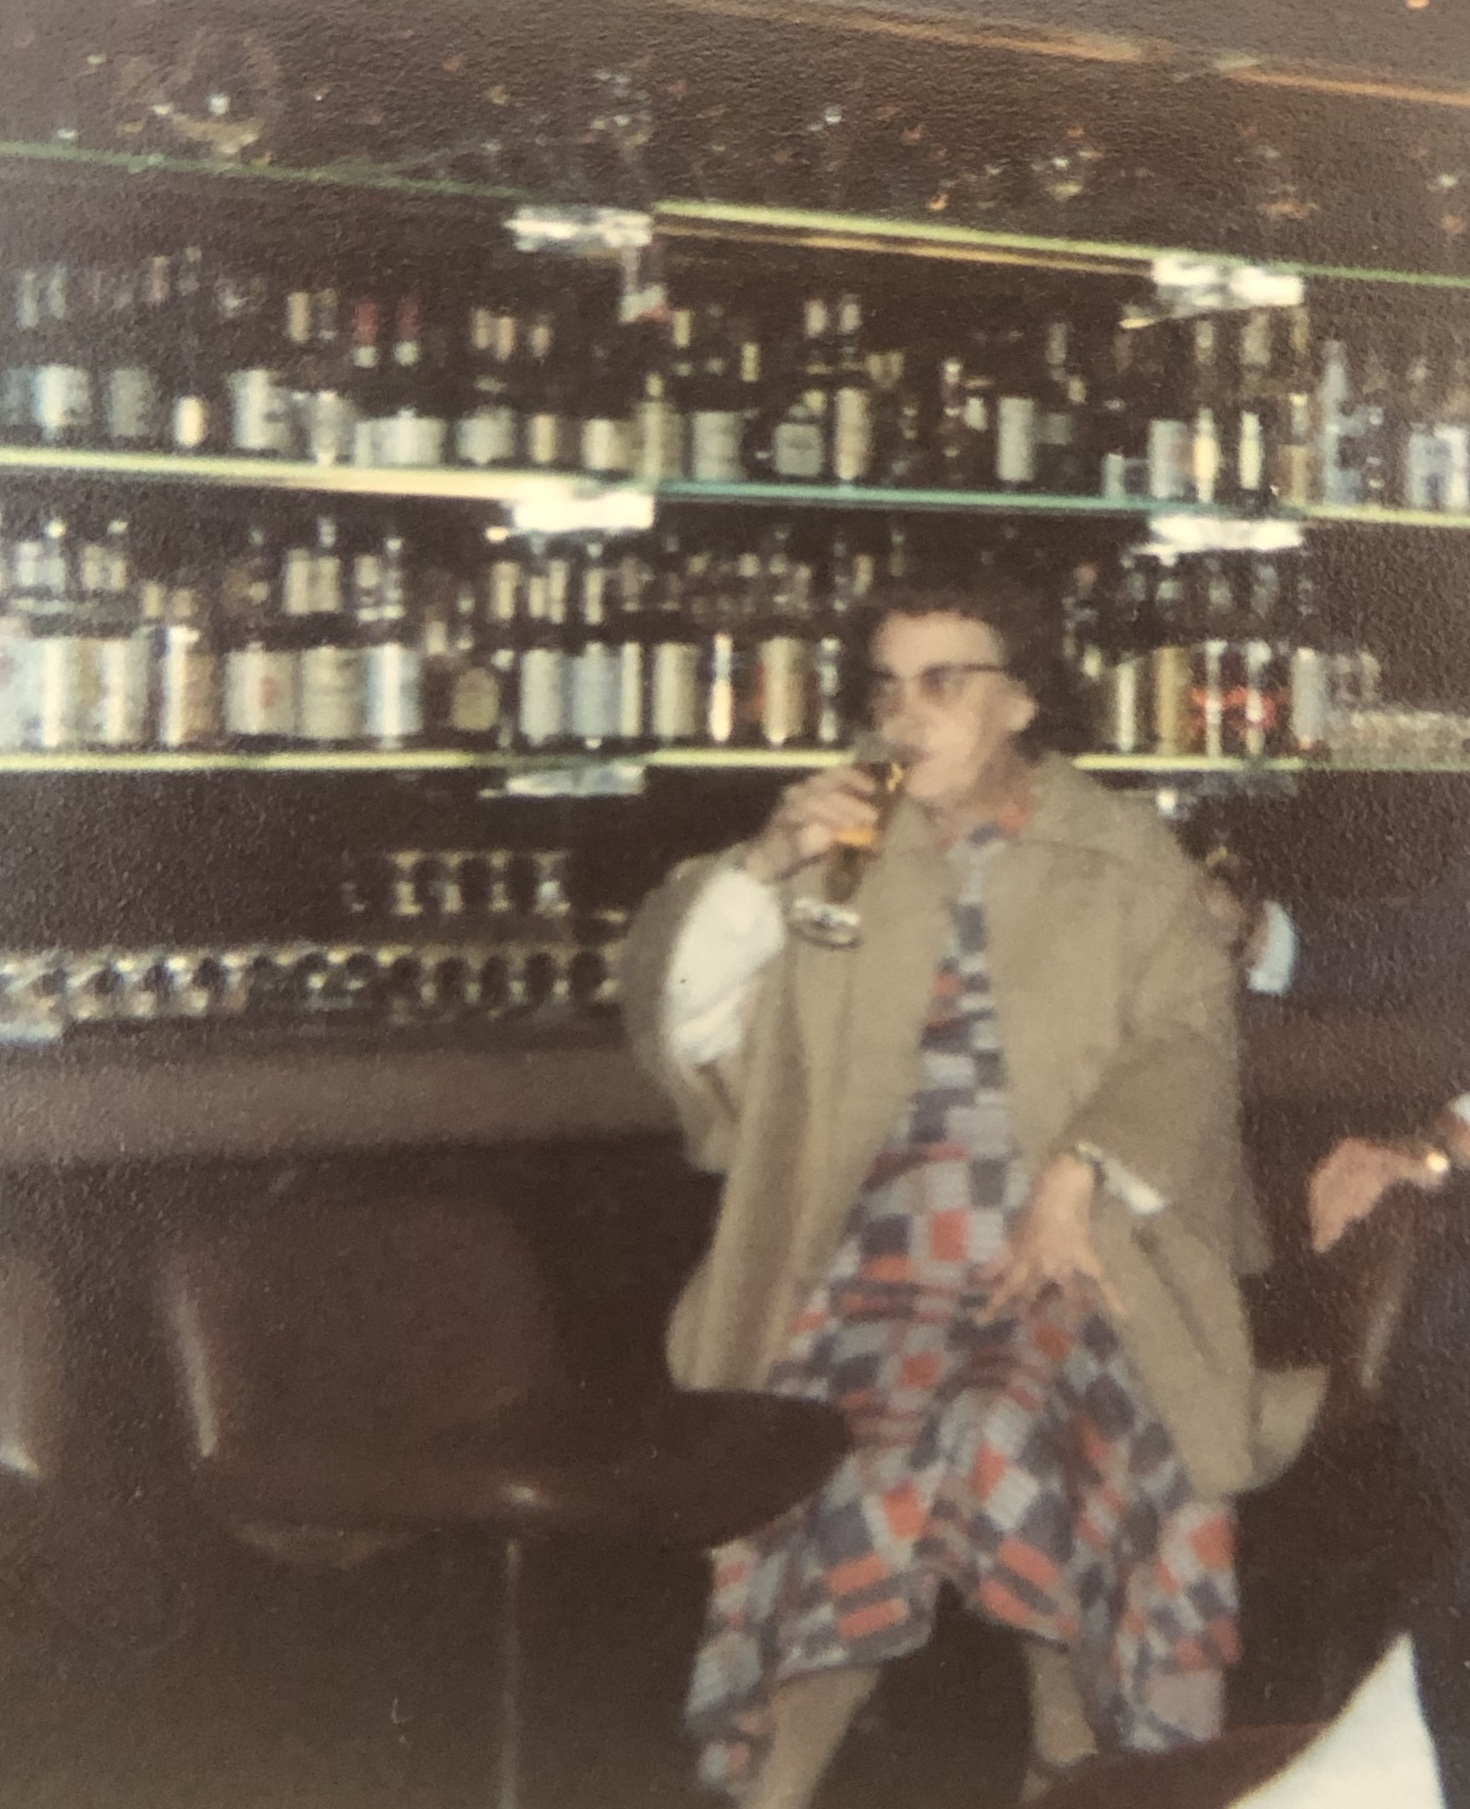 Gran enjoying a drink in the bar at the UN.